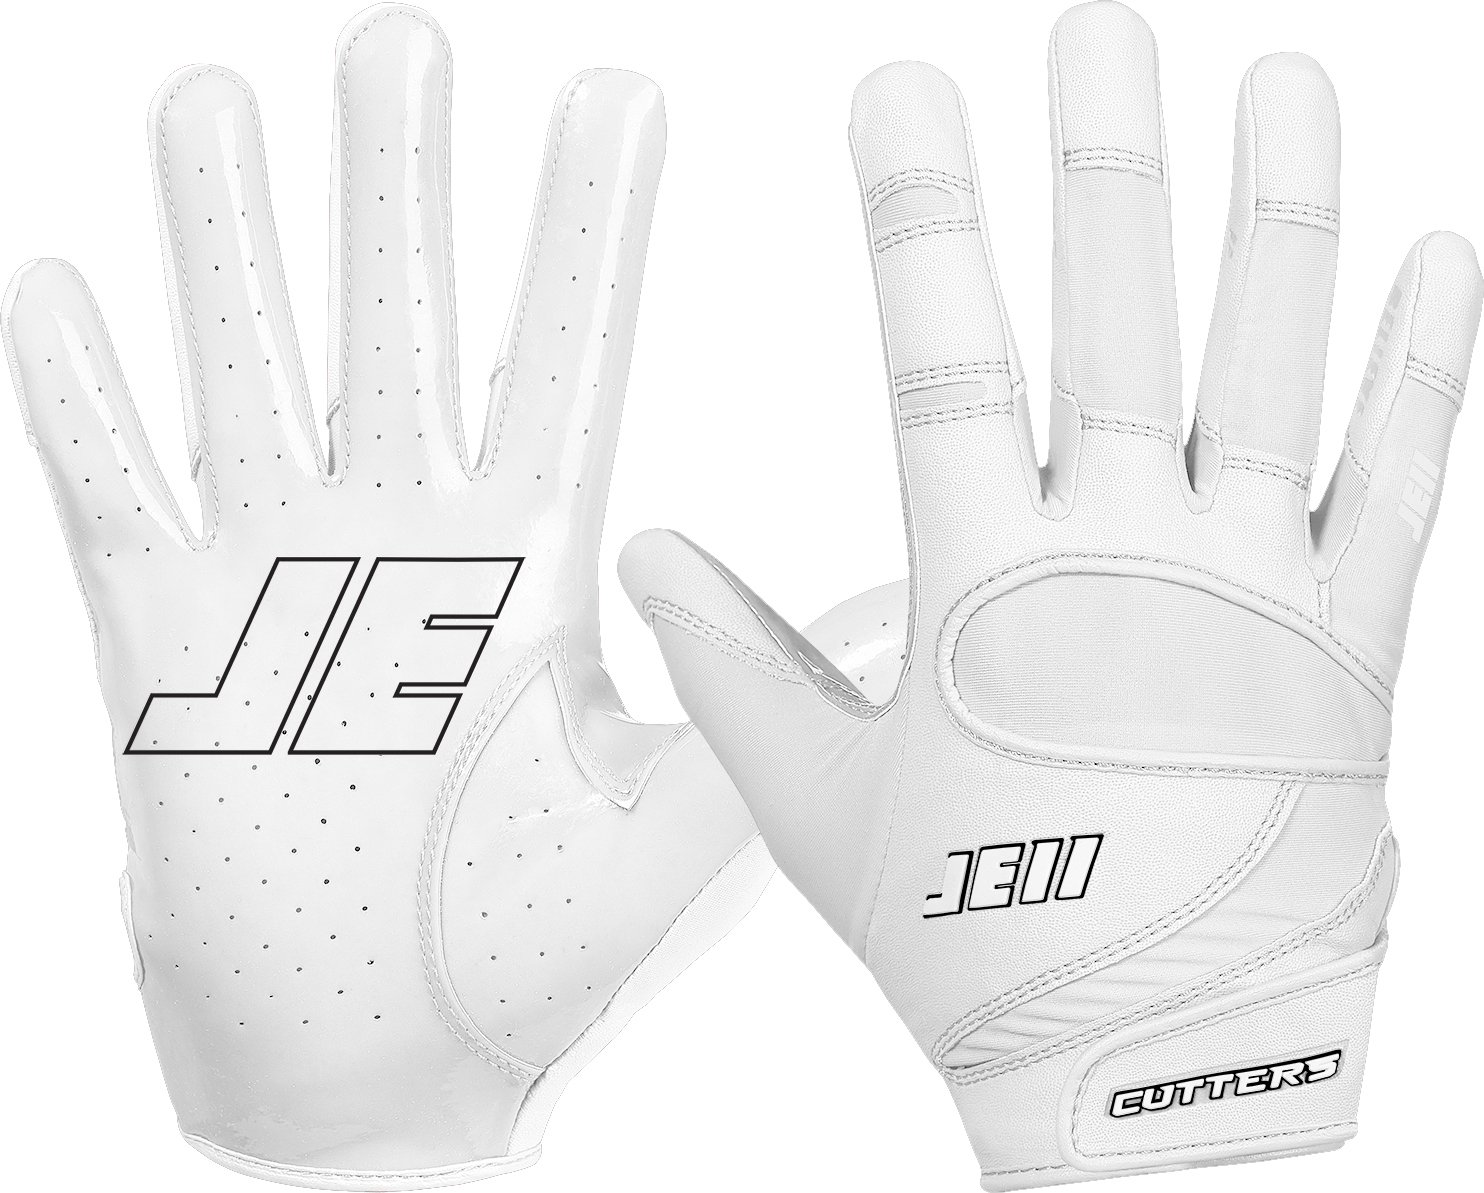 Cutters Gloves Signature Series Gloves, White, X-Large